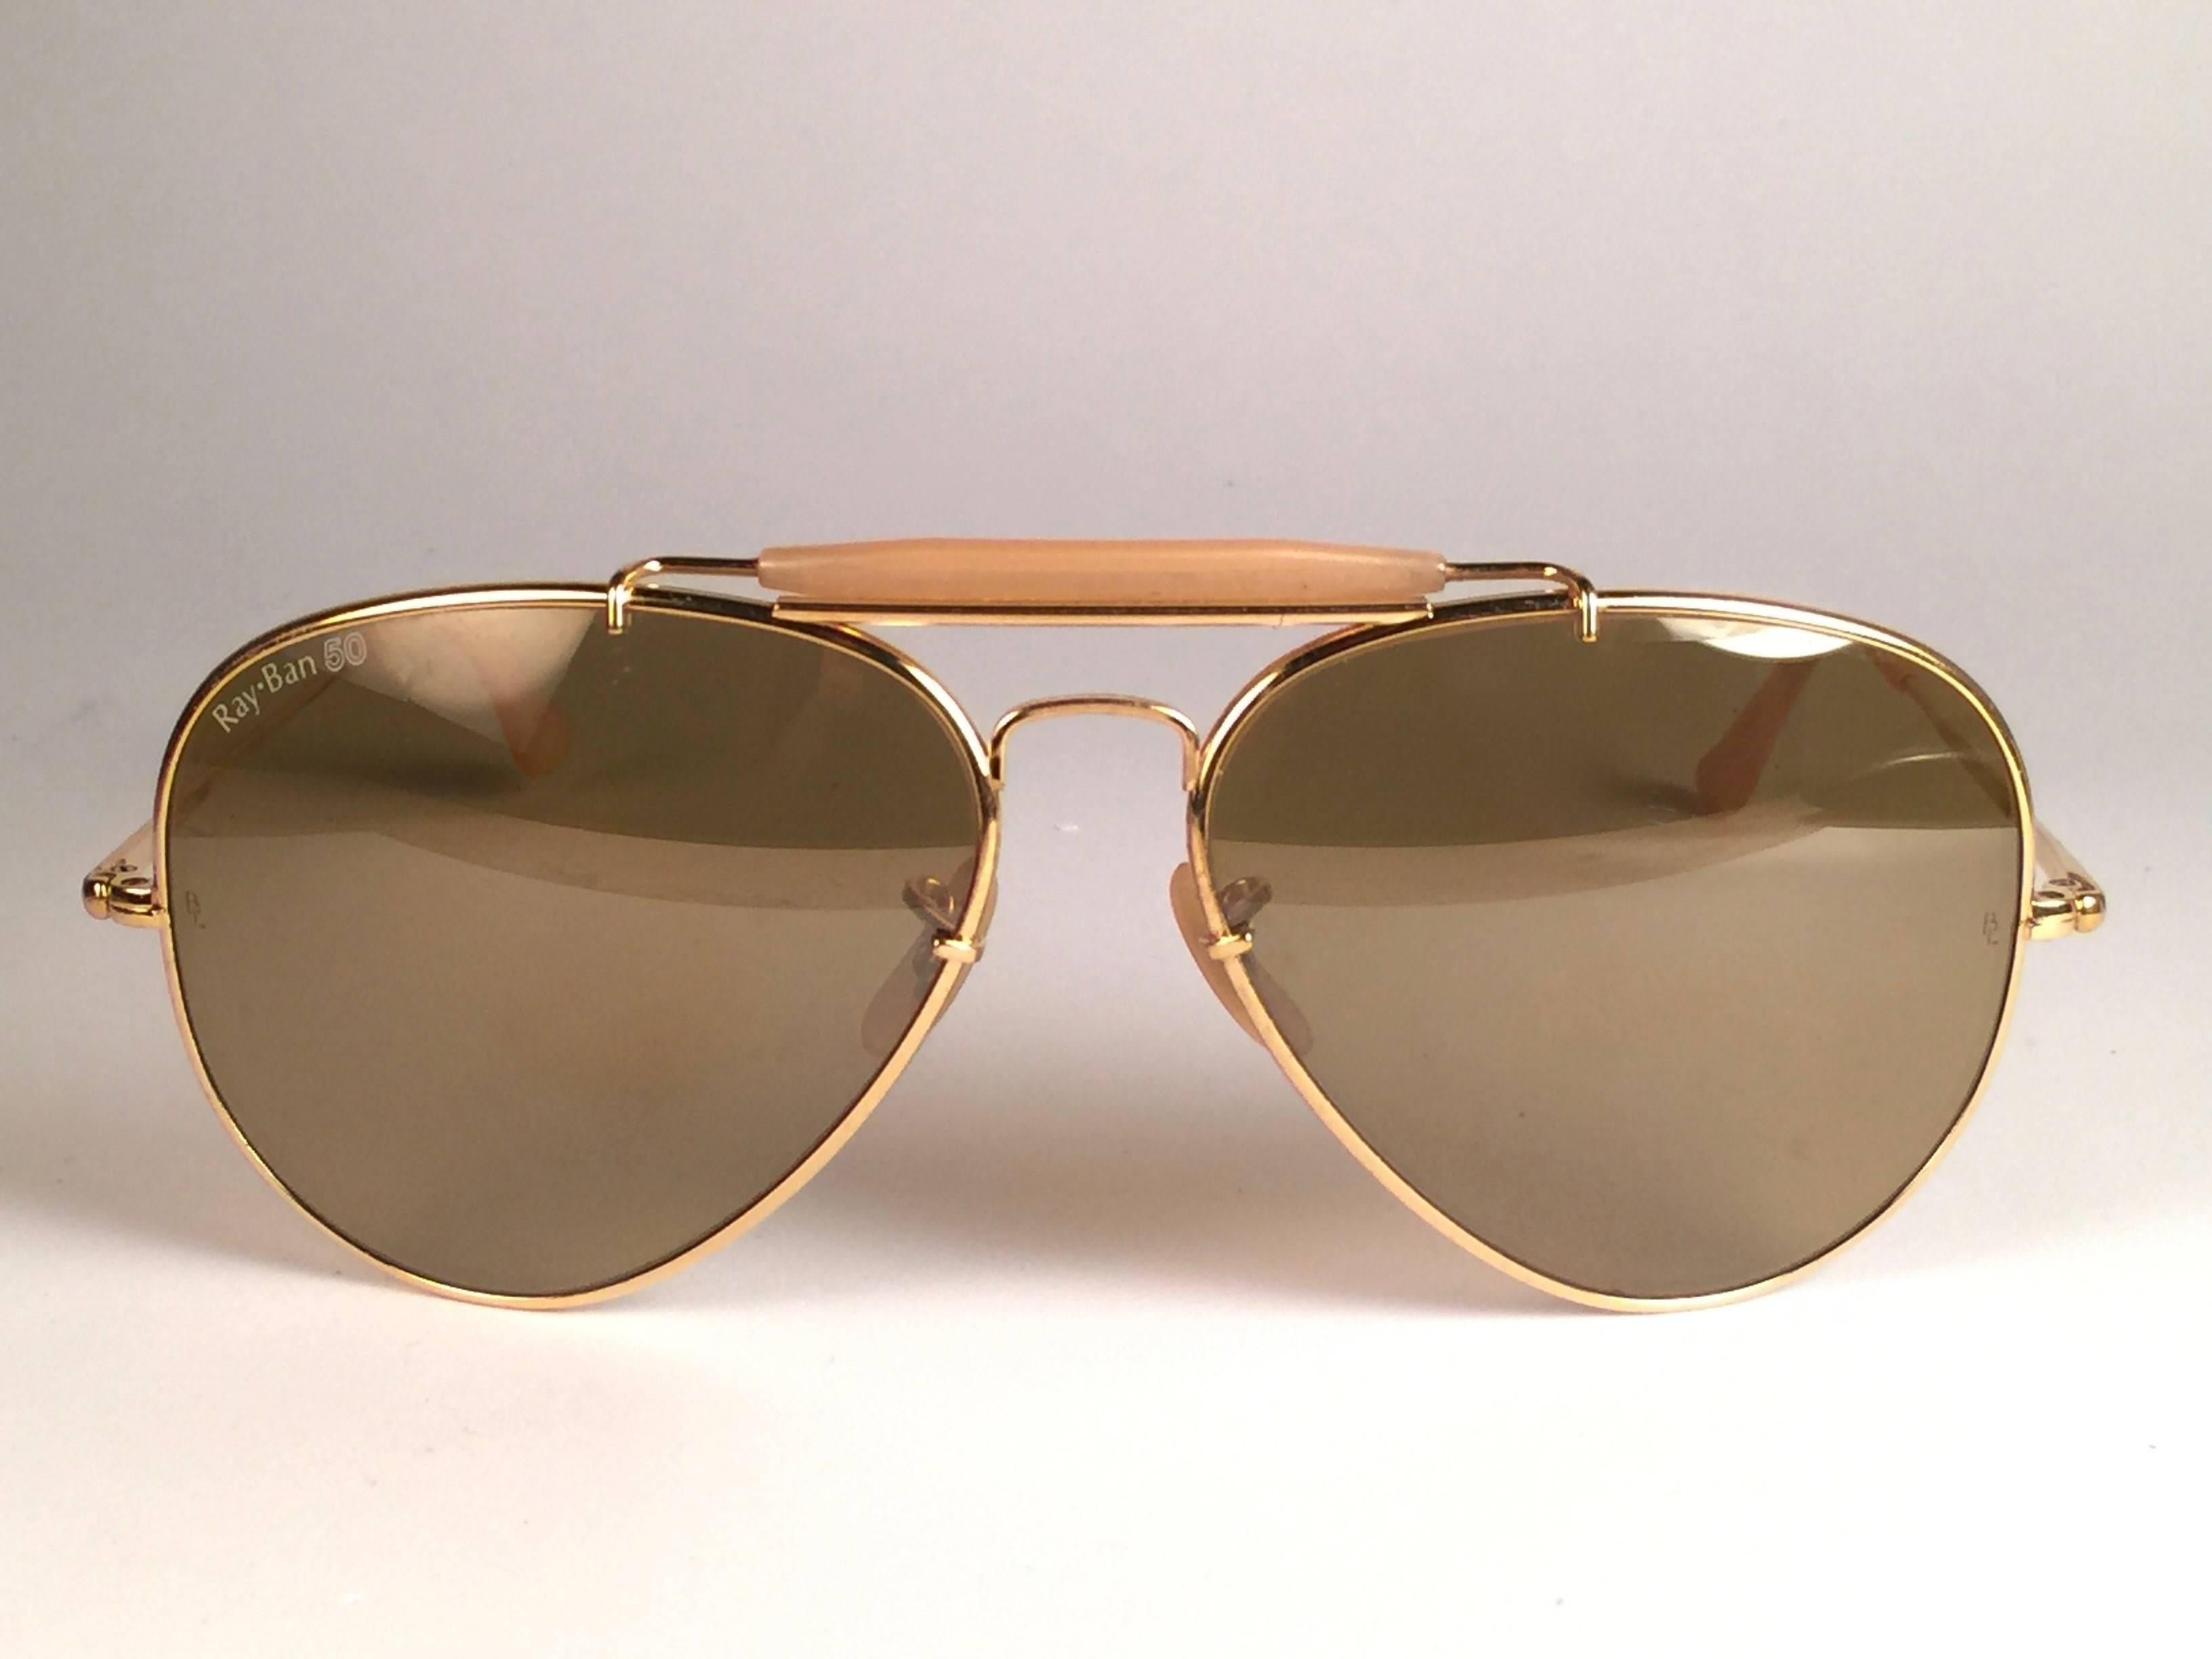 4cbbd8af7a Vintage Ray Ban The General 50 Collectors Item George Michael Faith Tour  62Mm US at 1stdibs